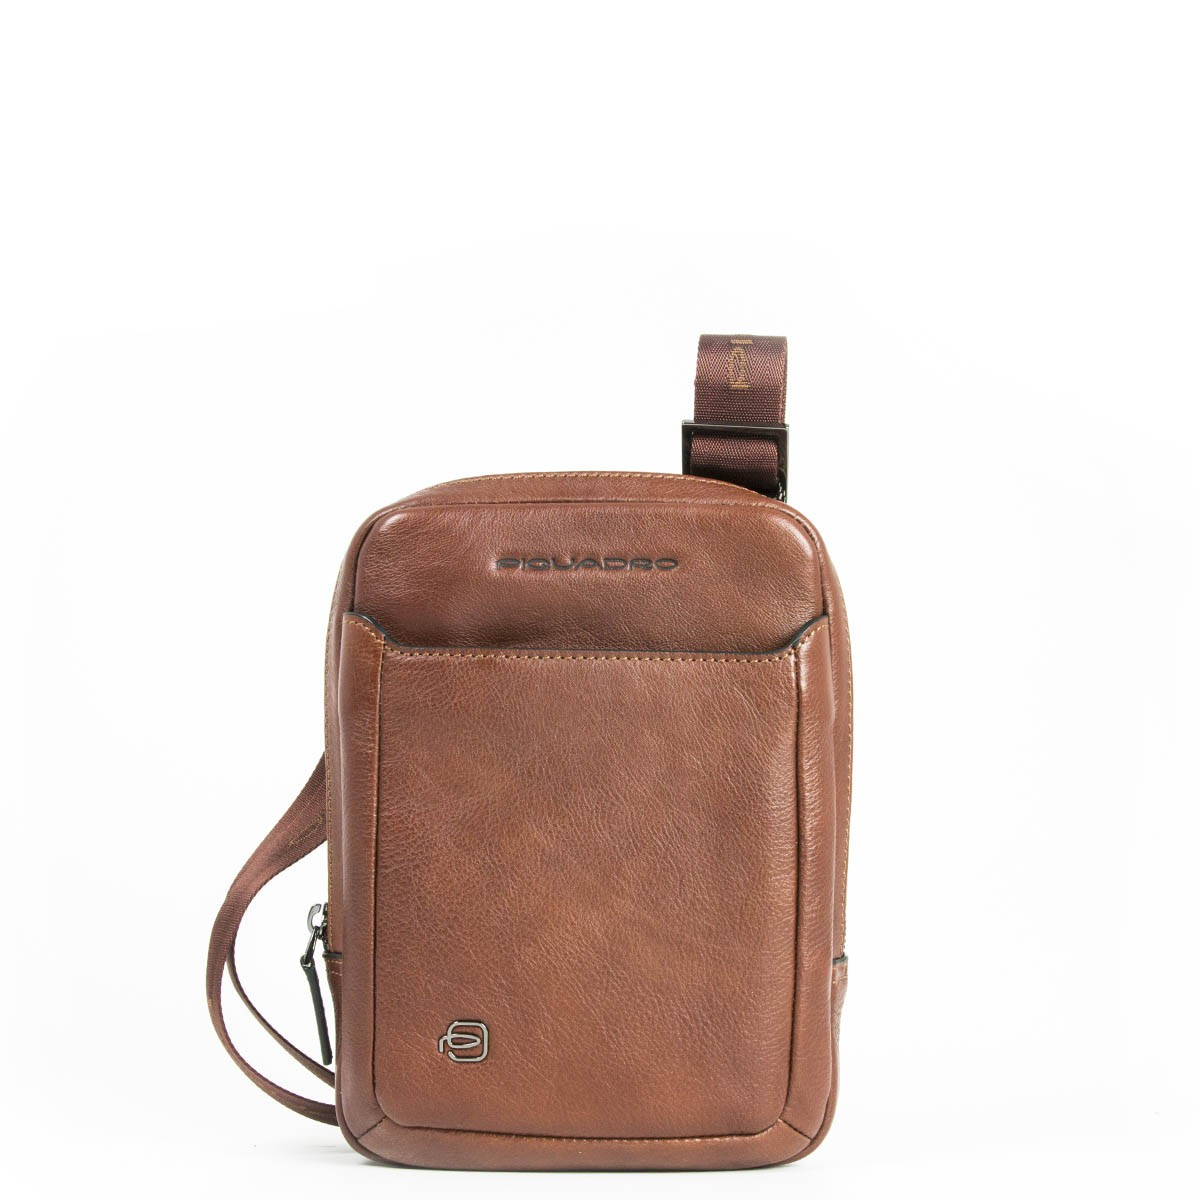 Piquadro Leather man's bag, with compartment for tablet 7